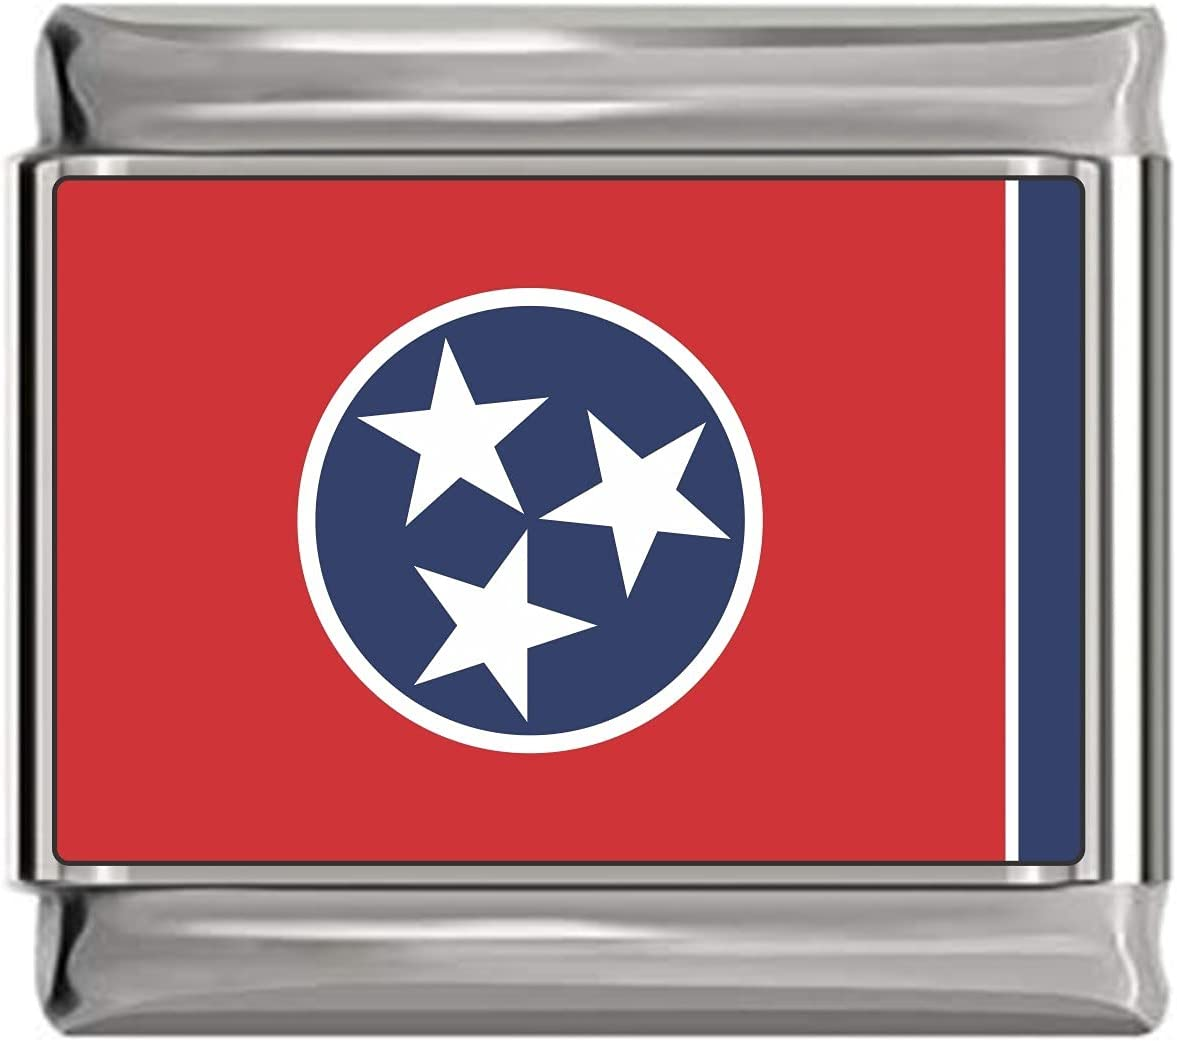 State of Tennessee Photo Flag Italian Charm Bracelet Jewelry Link